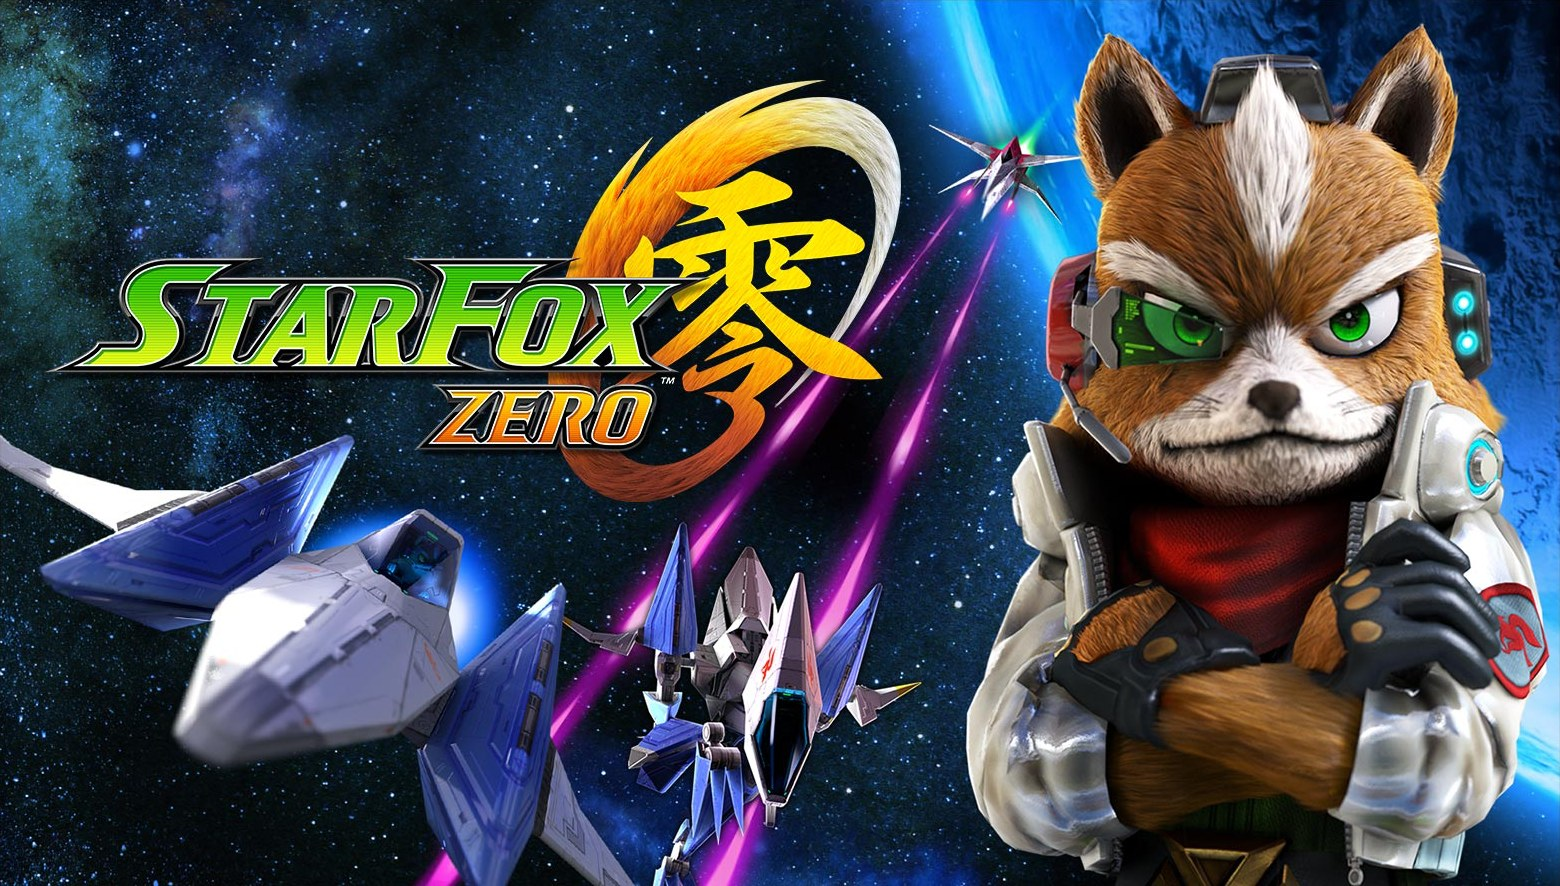 Star Fox: Zero Release Date Announced